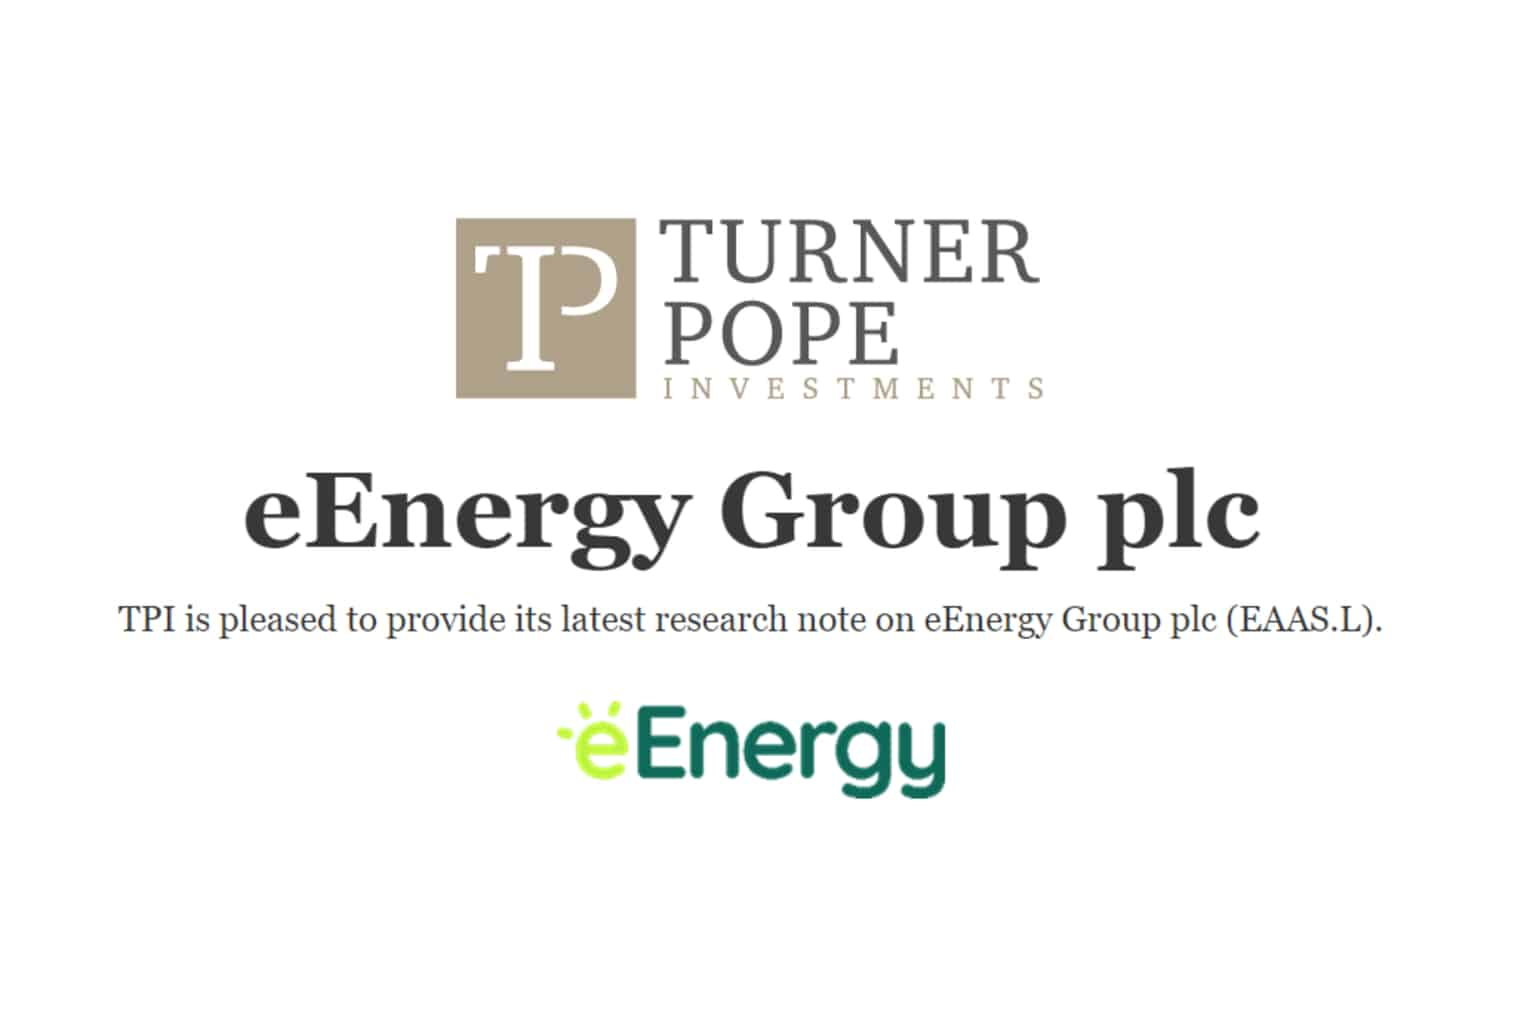 eaas - TPI provides its latest research note on eEnergy Group plc (EAAS.L).